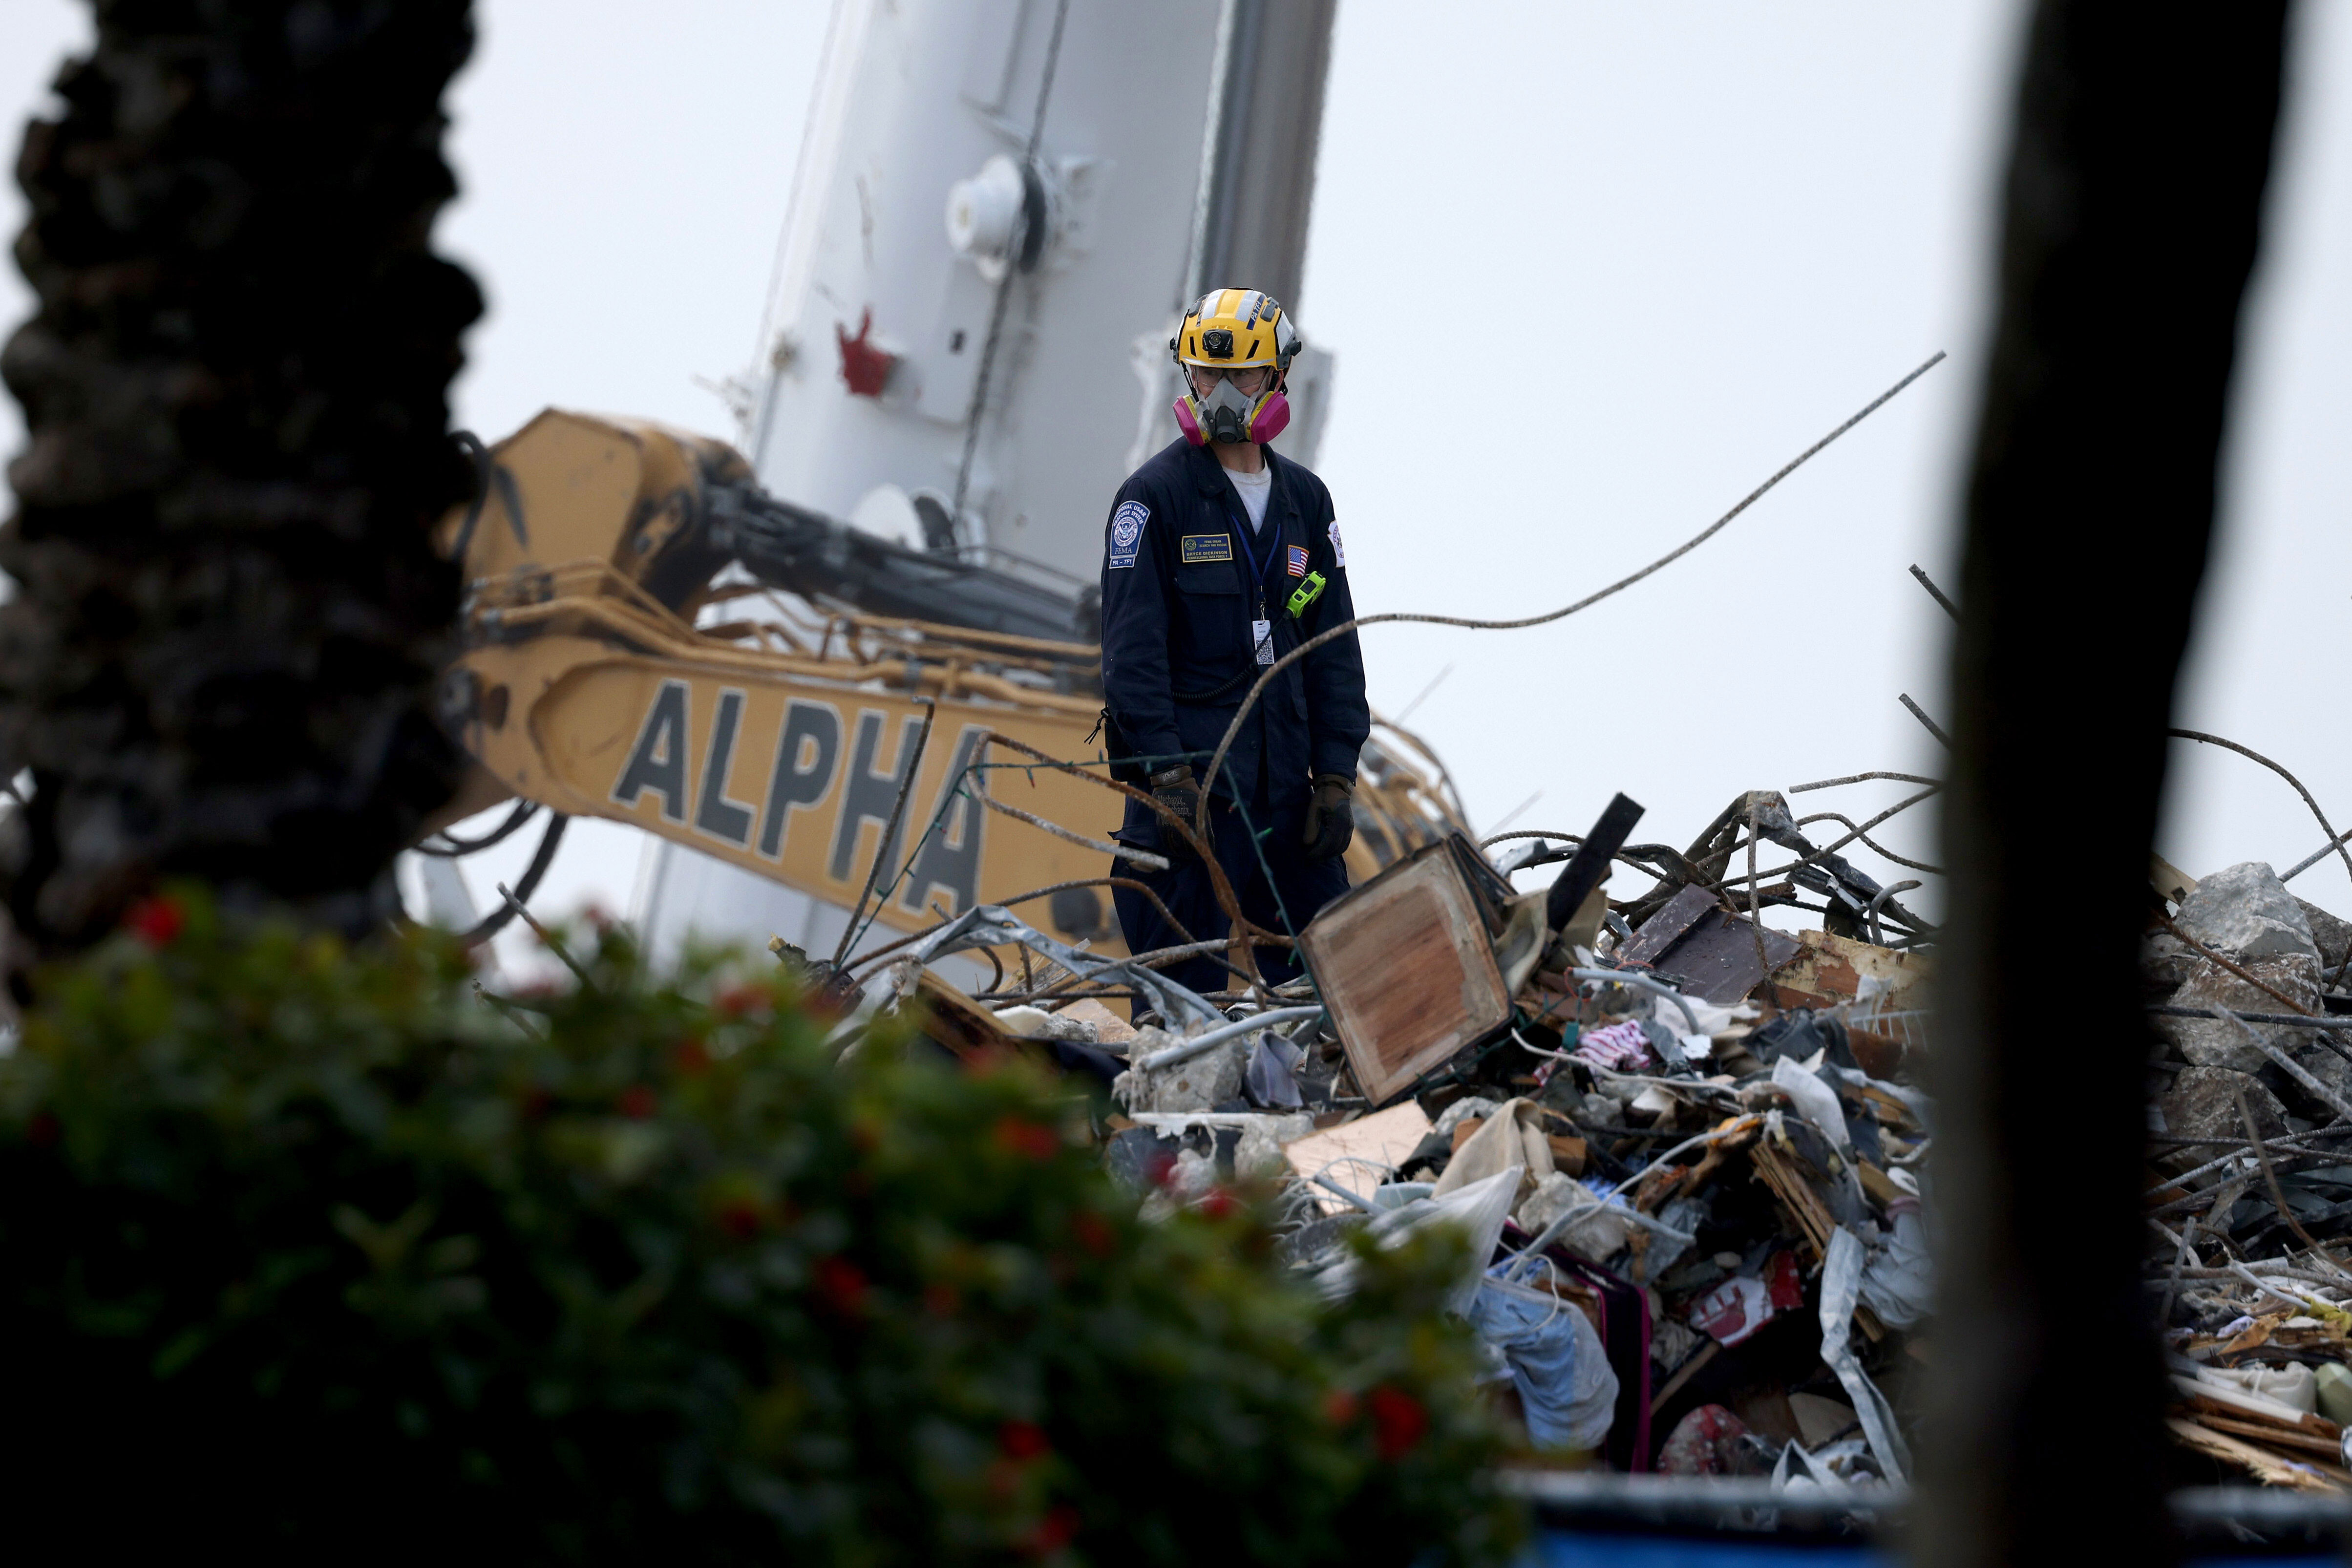 Death toll rises to 90 in Surfside condo collapse